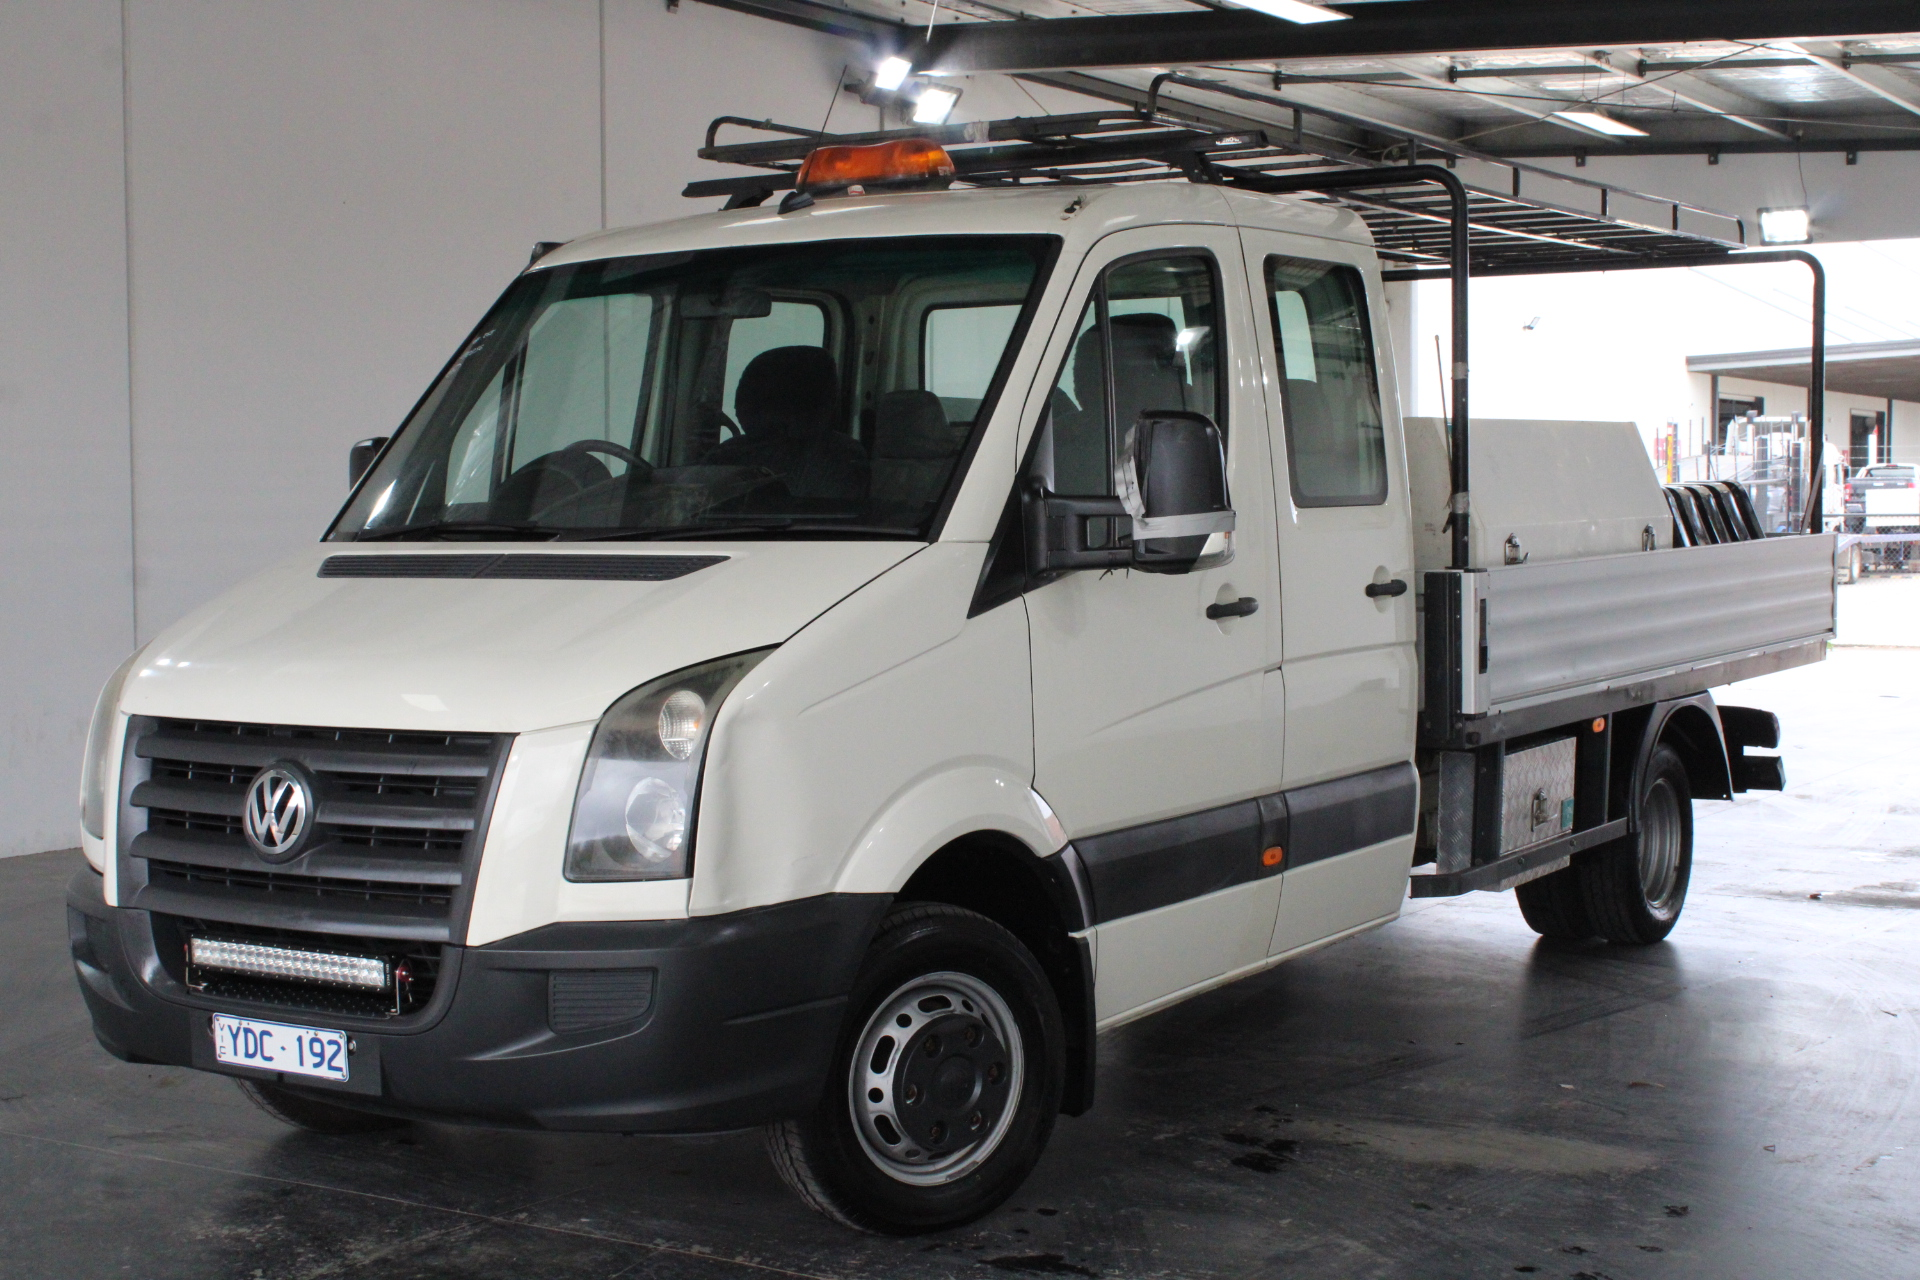 2009 Volkswagen Crafter 50 LWB Turbo Diesel Manual Crew Cab Chassis